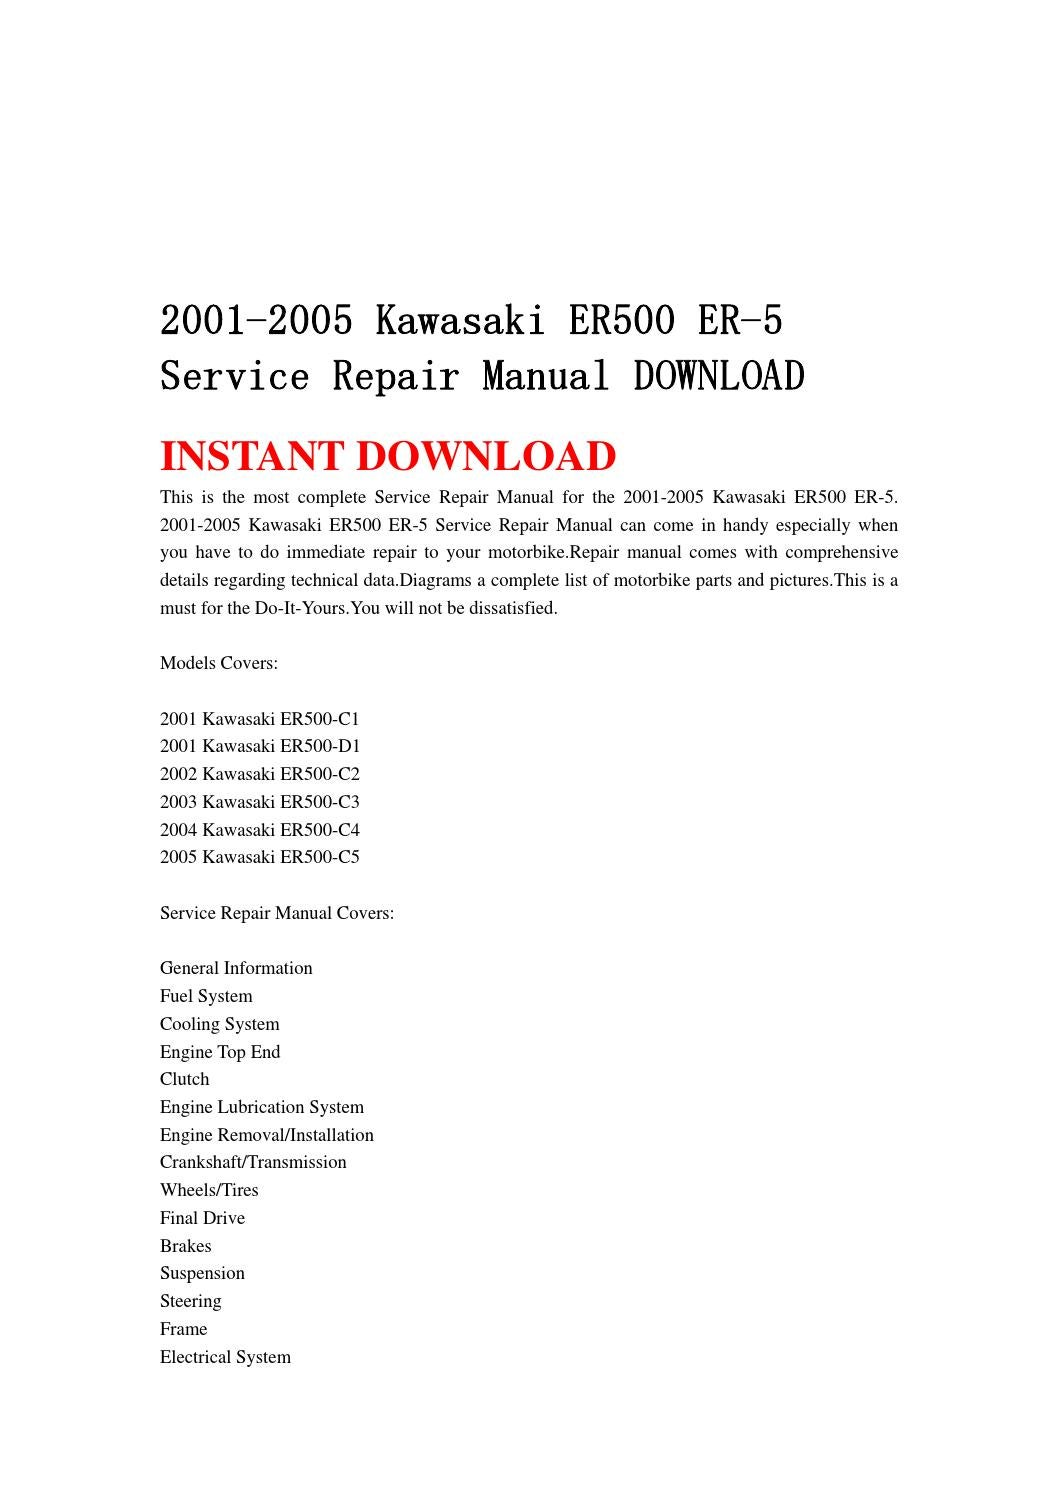 kawasaki er 5 manual download